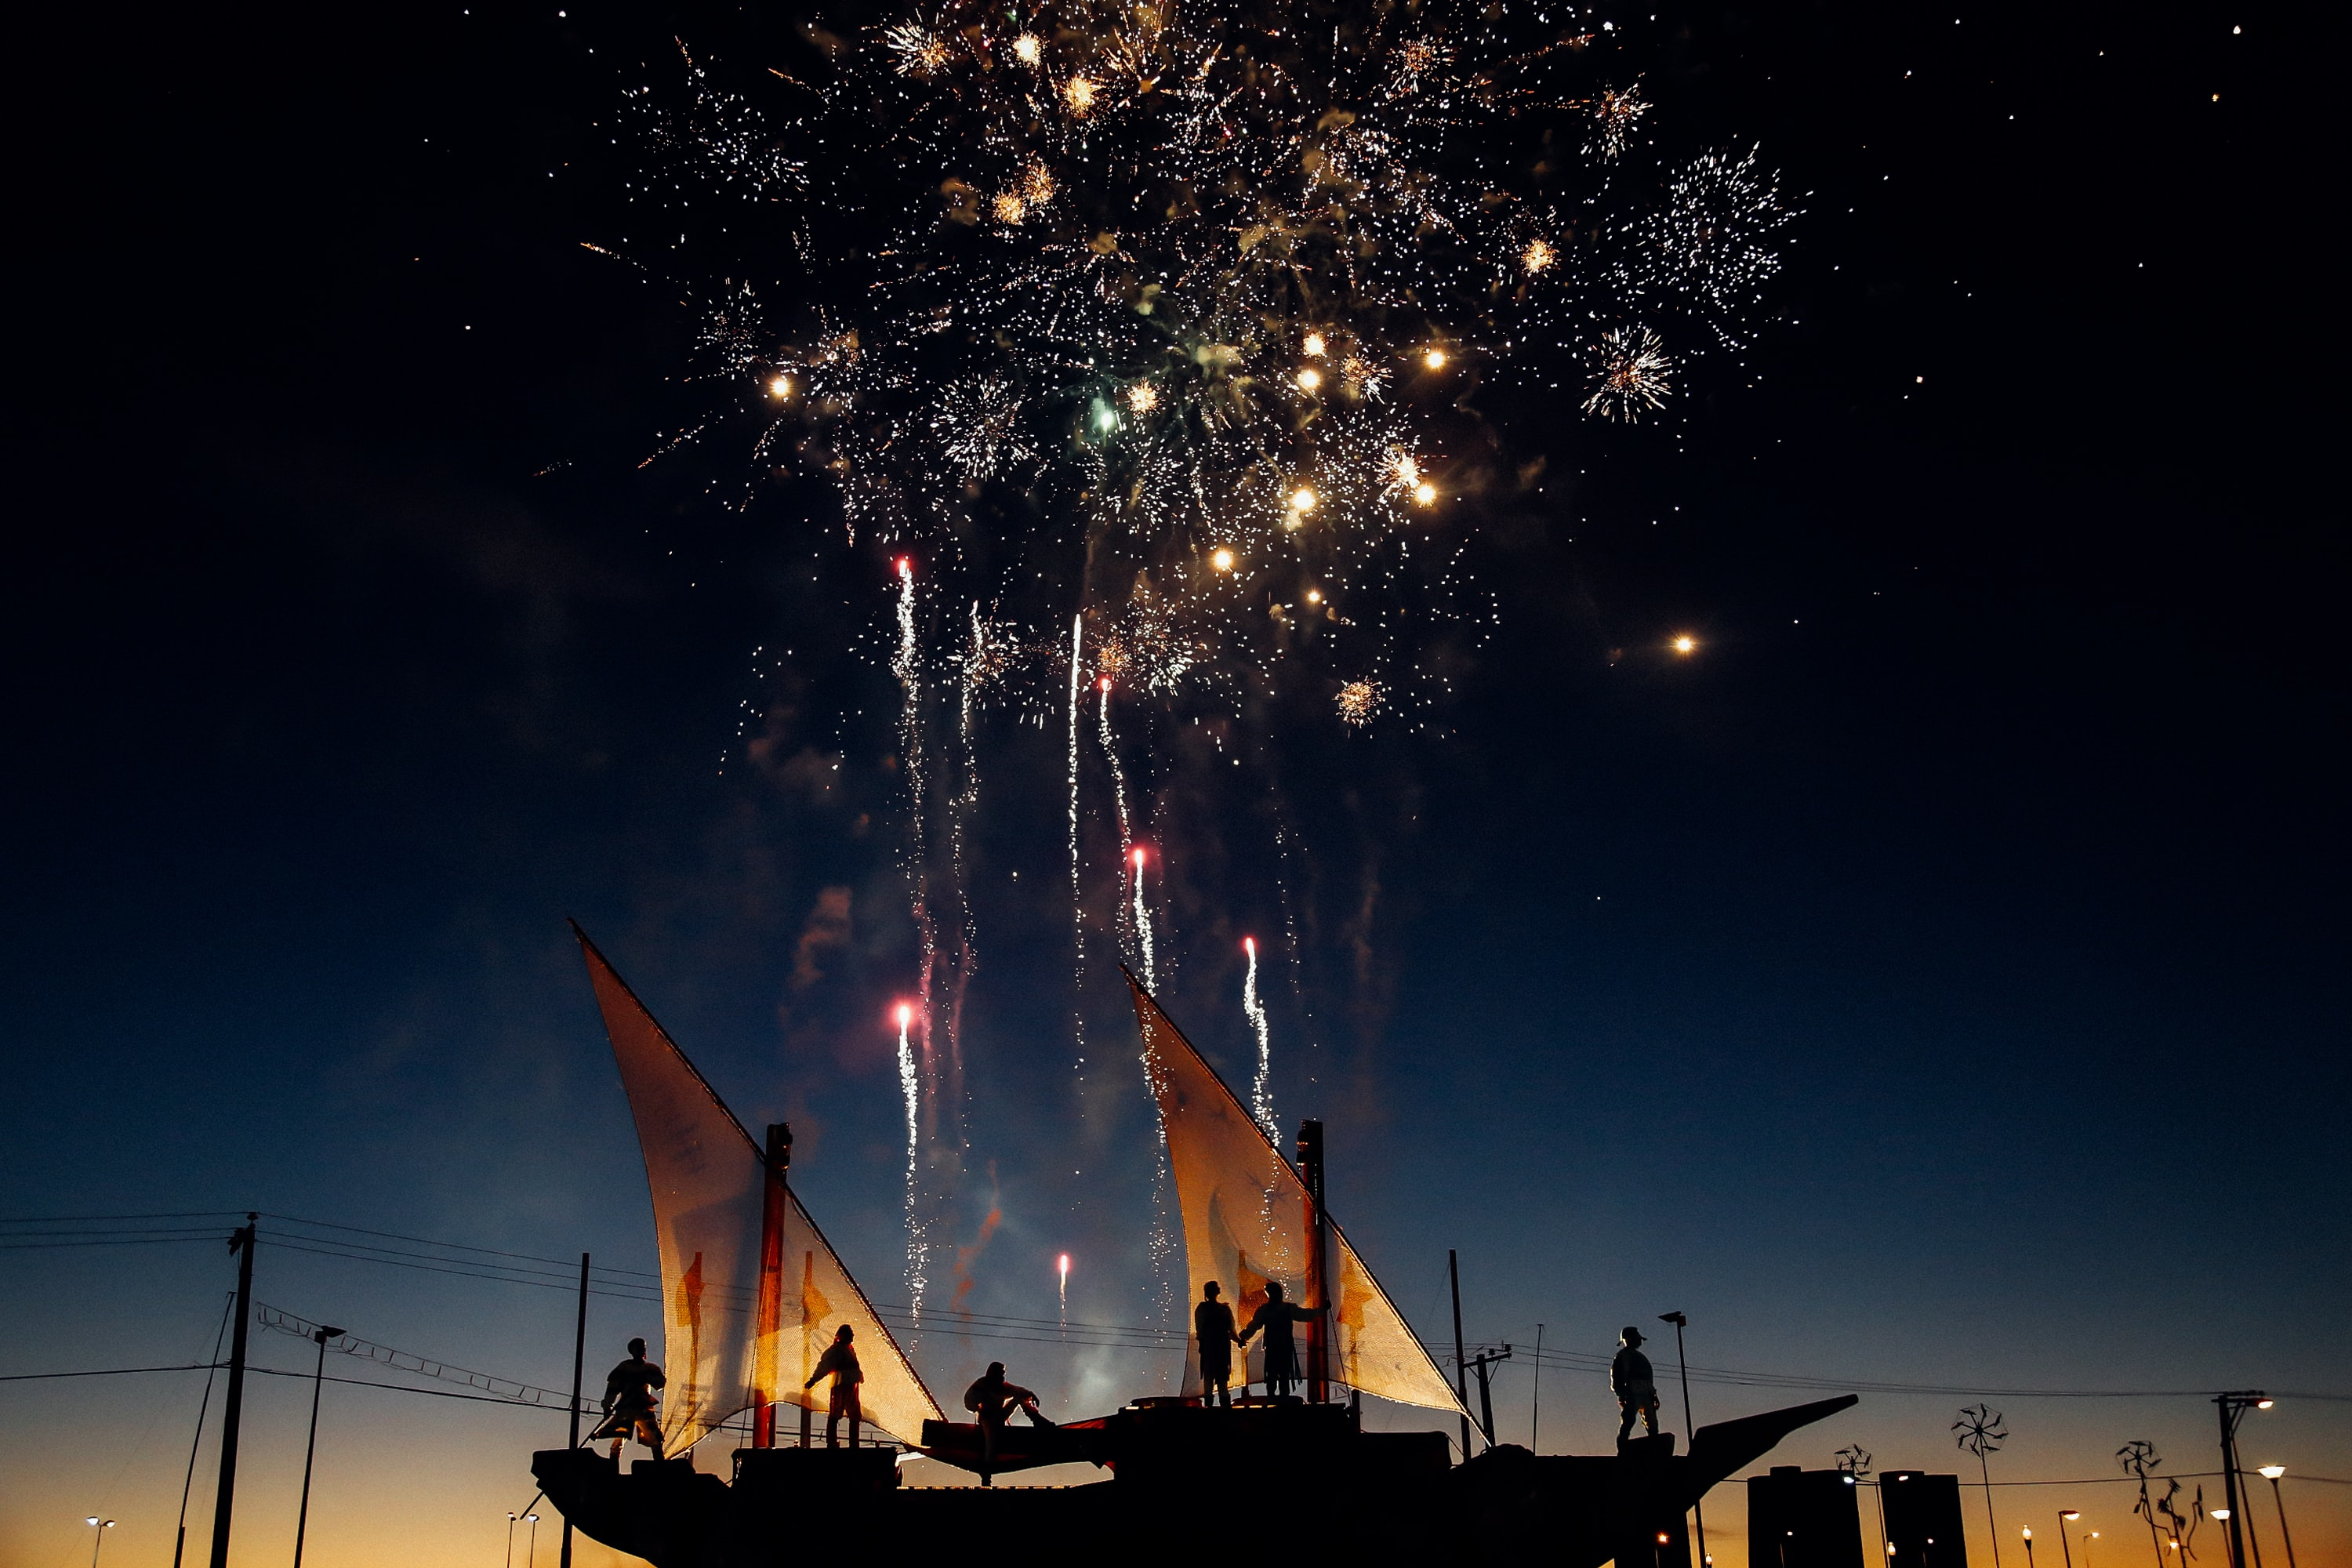 Silhouette of people on a pirate ship watching the fireworks in Concepción